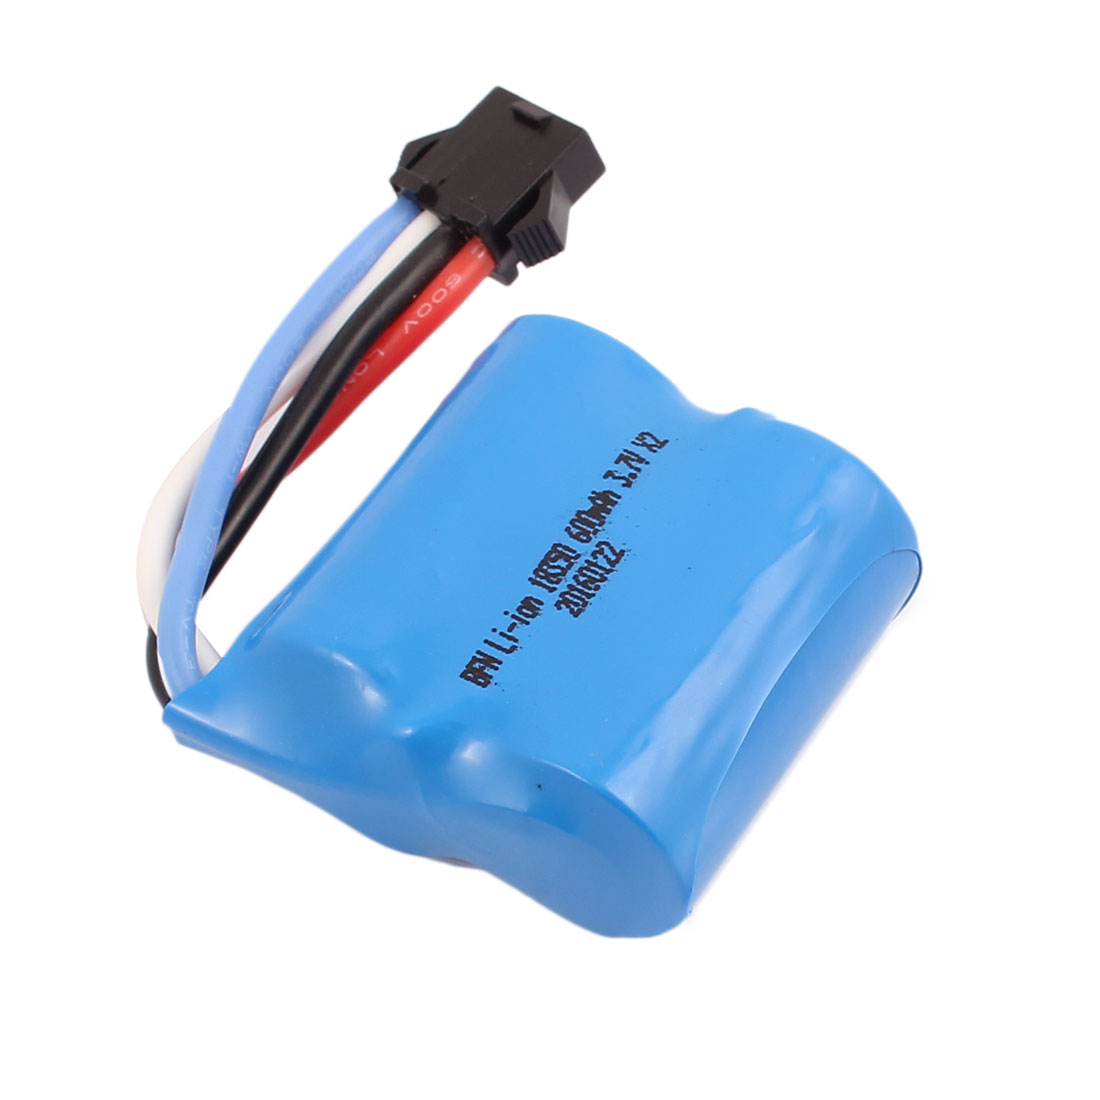 7.4V 600mAh Charging Lithium Polymer Li-po Battery SM-4P Connector for RC Airplane Aircraft